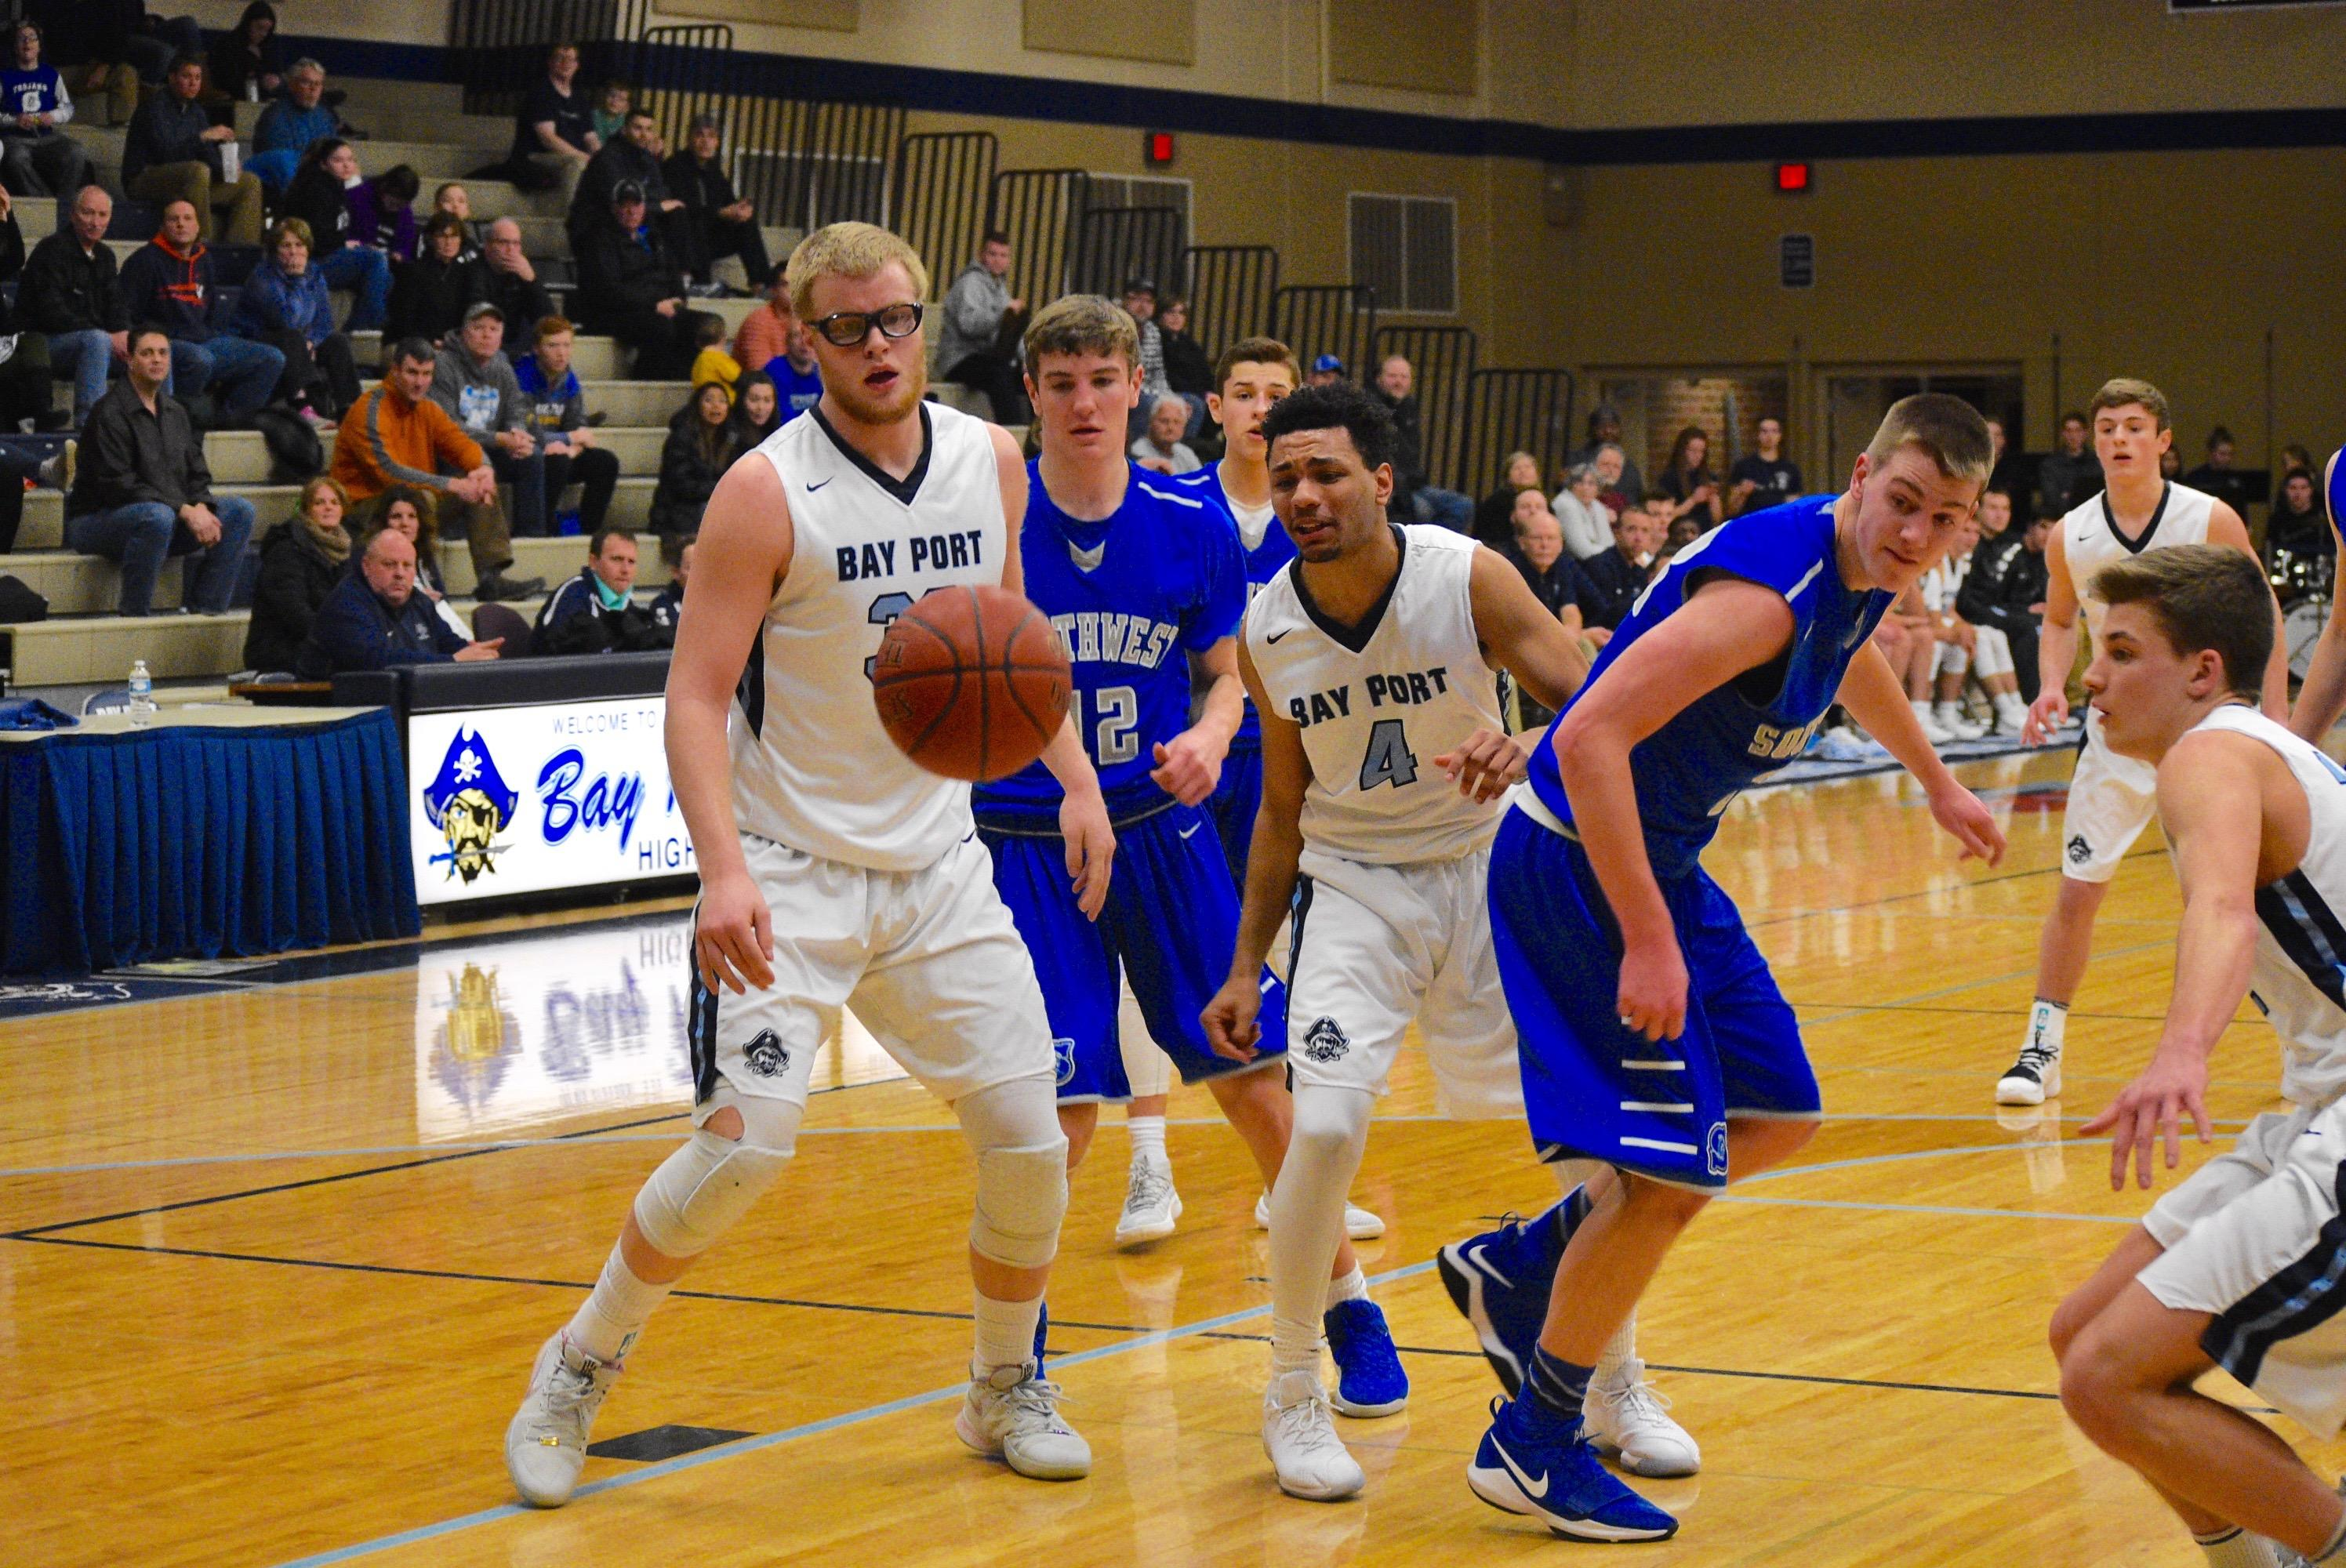 Bay Port defeated Green Bay Southwest, 66-57, on Tuesday night. (Doug Ritchay/WLUK)